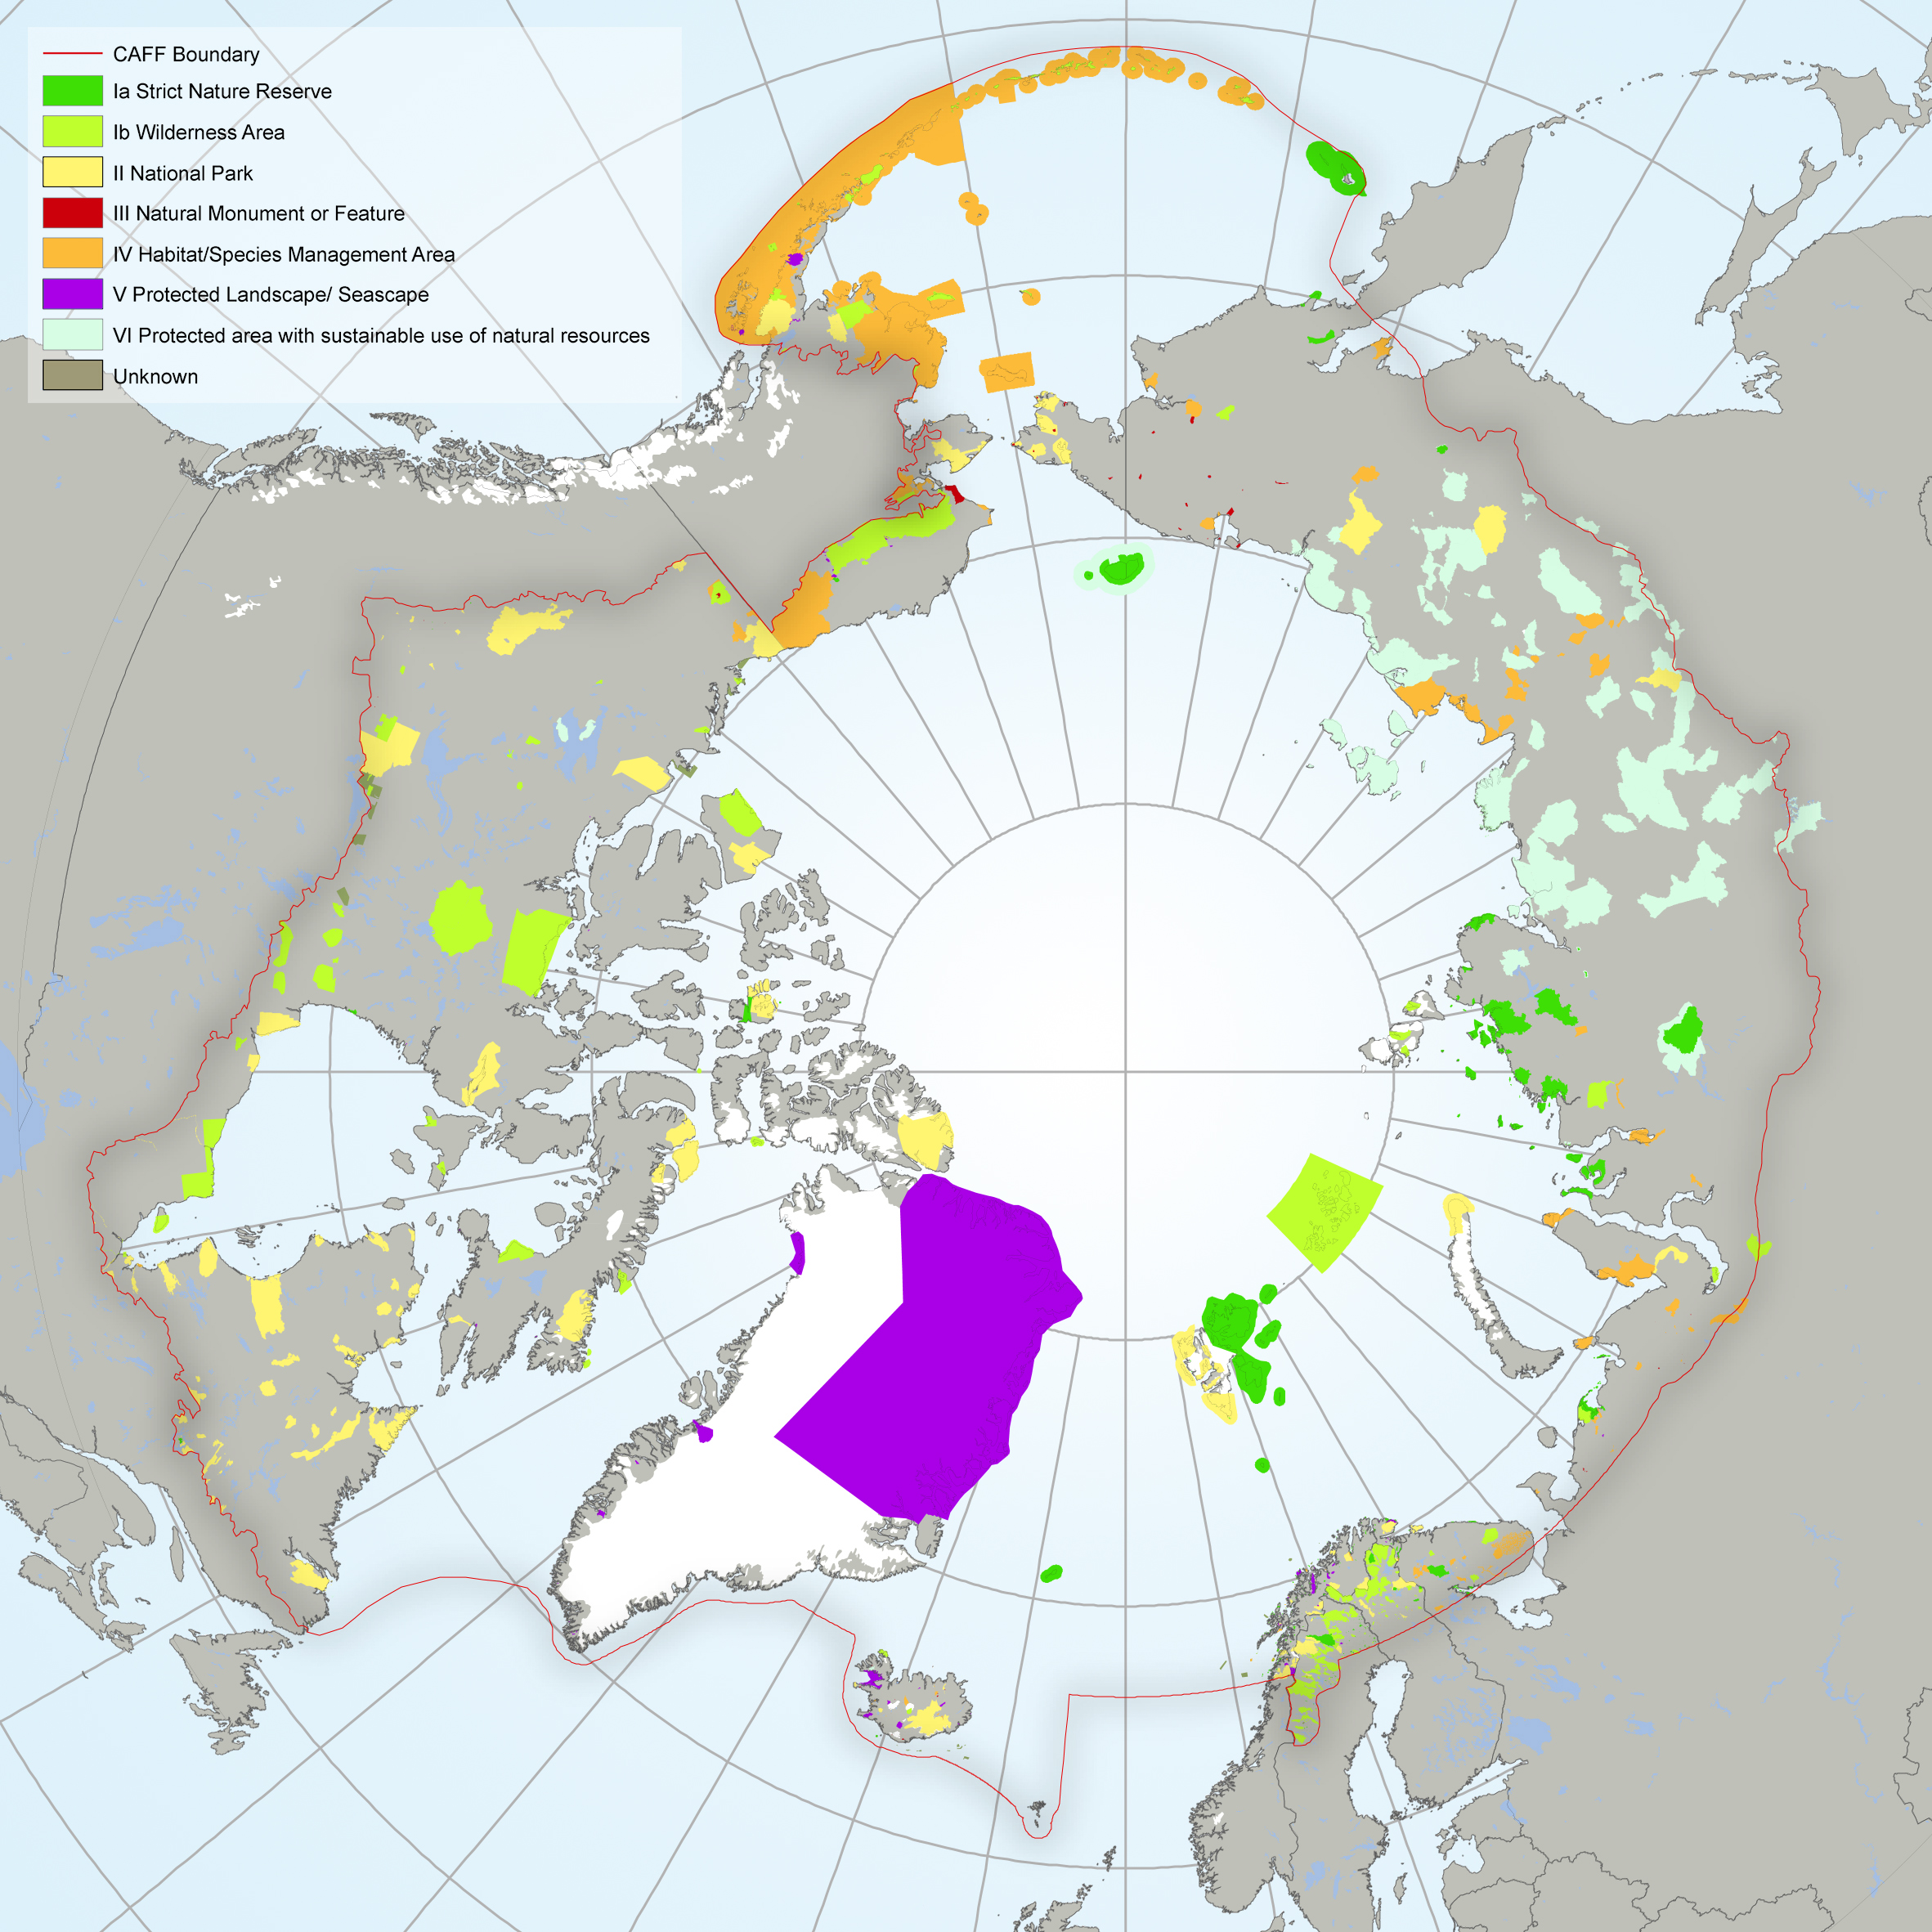 Protected areas in the Arctic as classified by IUCN Protected Areas Management categorization